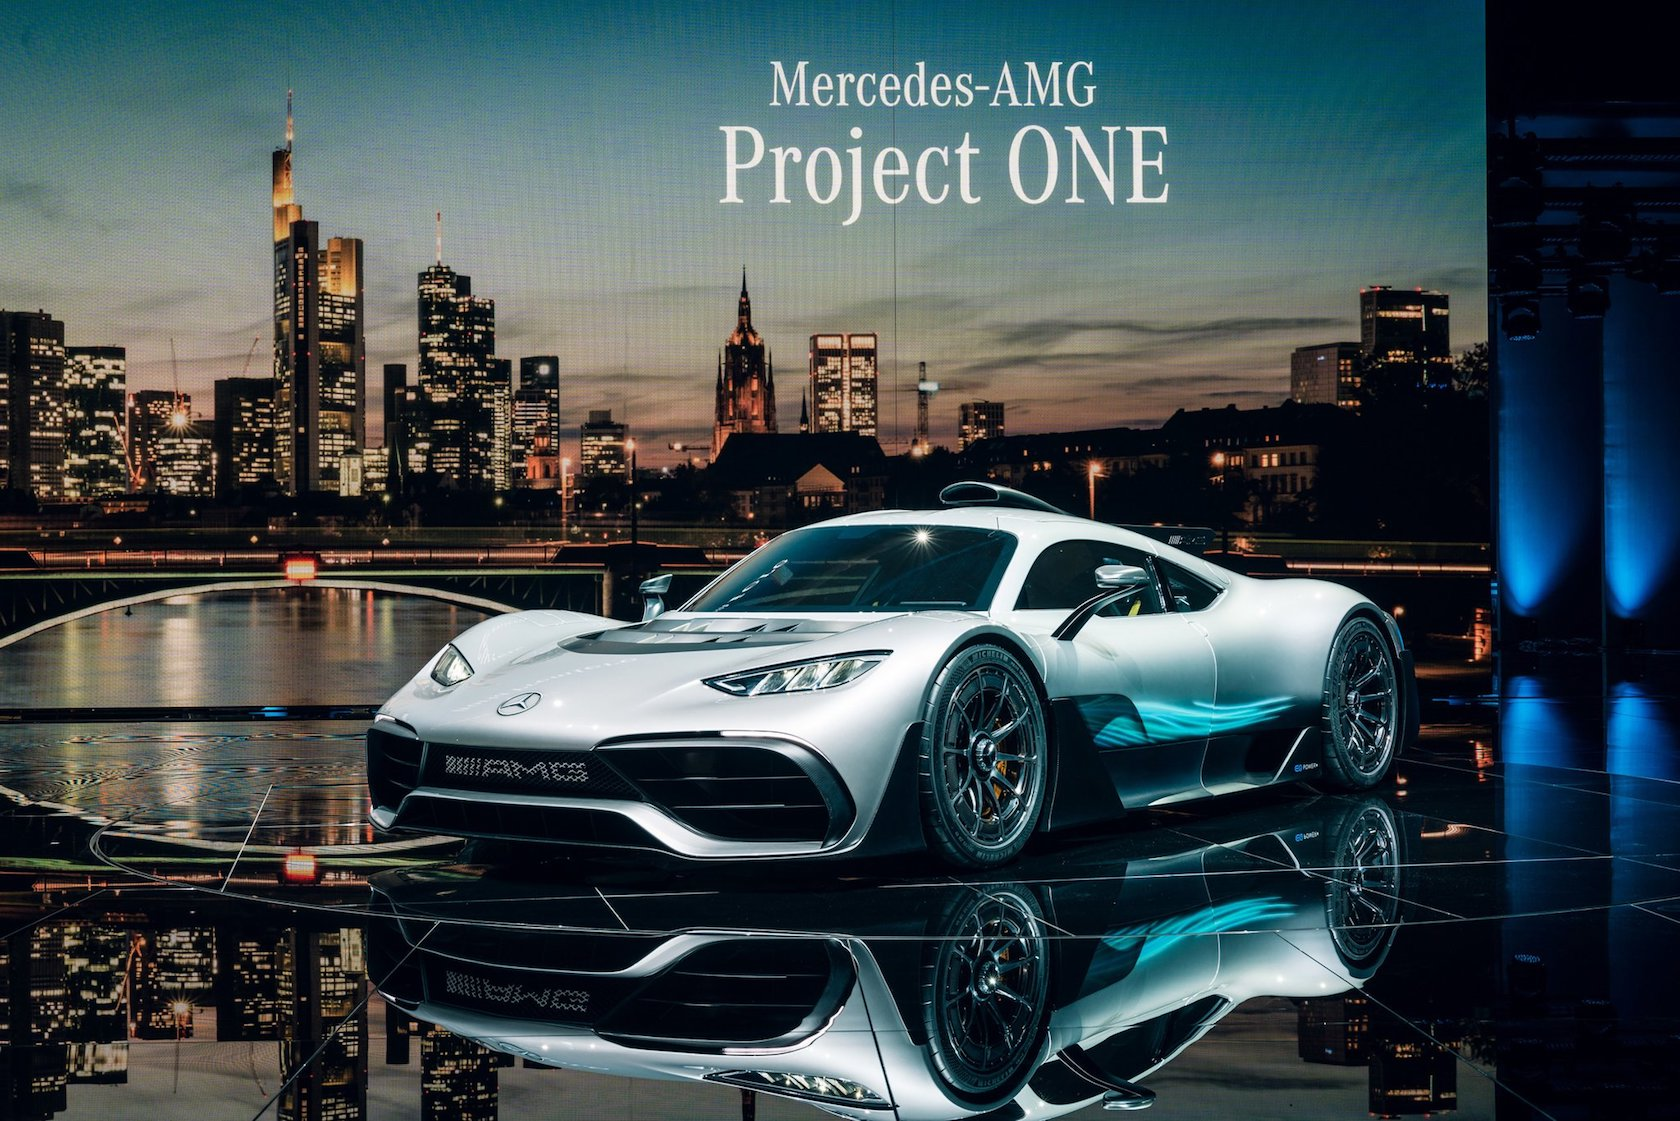 Hottest Car Premier of the Year! Mercedes- AMG Project One